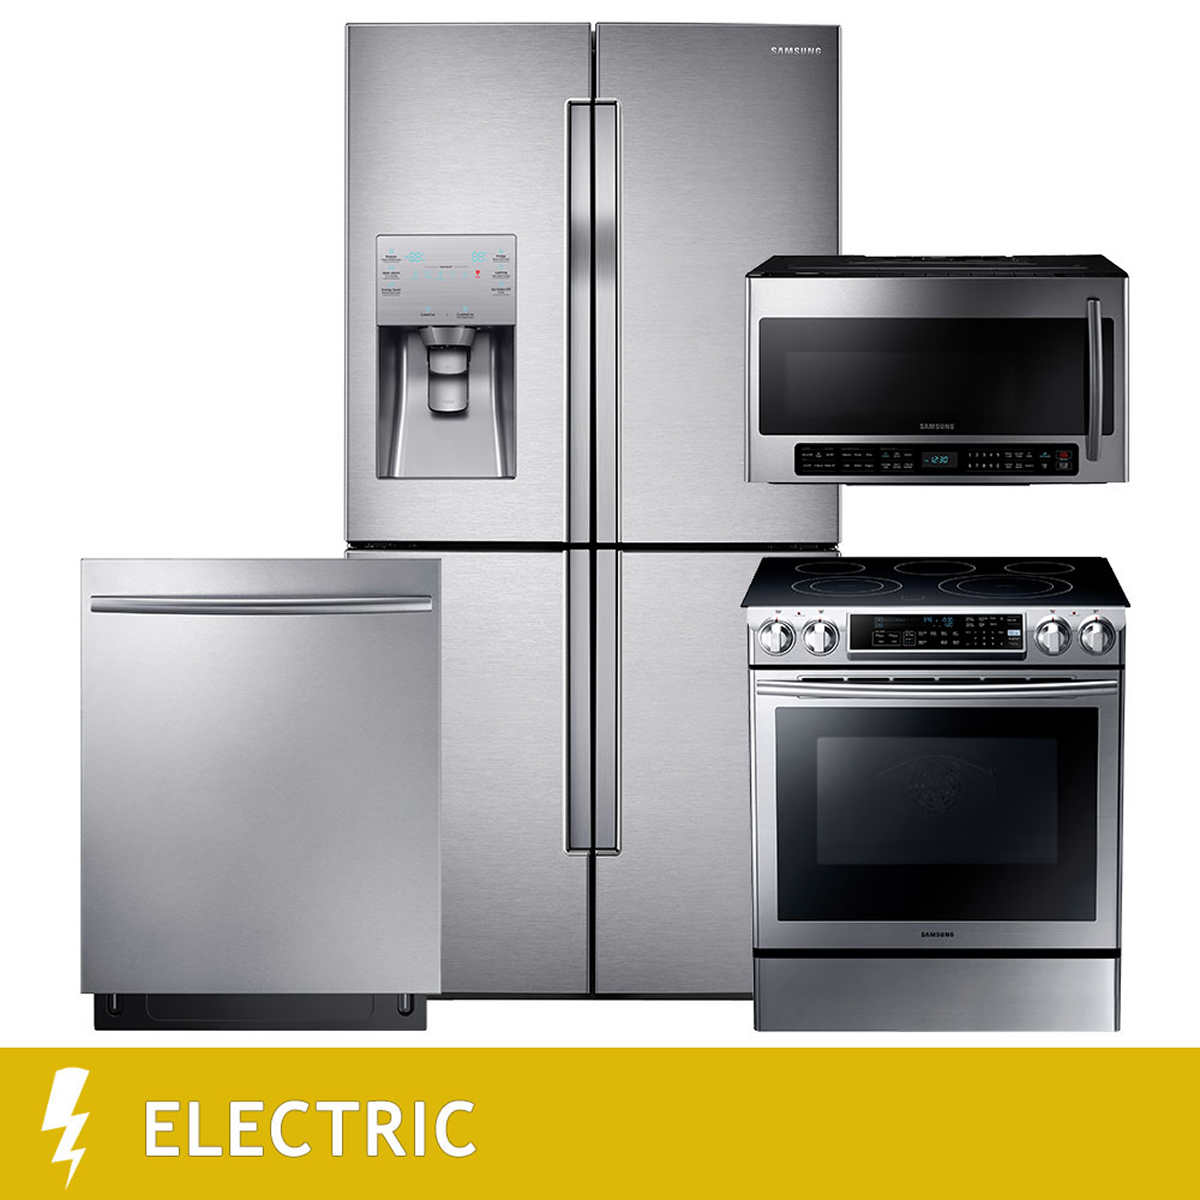 Uncategorized Kitchen Appliance Combos kitchen suites costco samsung 4 piece electric 23cuft counter depth door flex french refrigerator